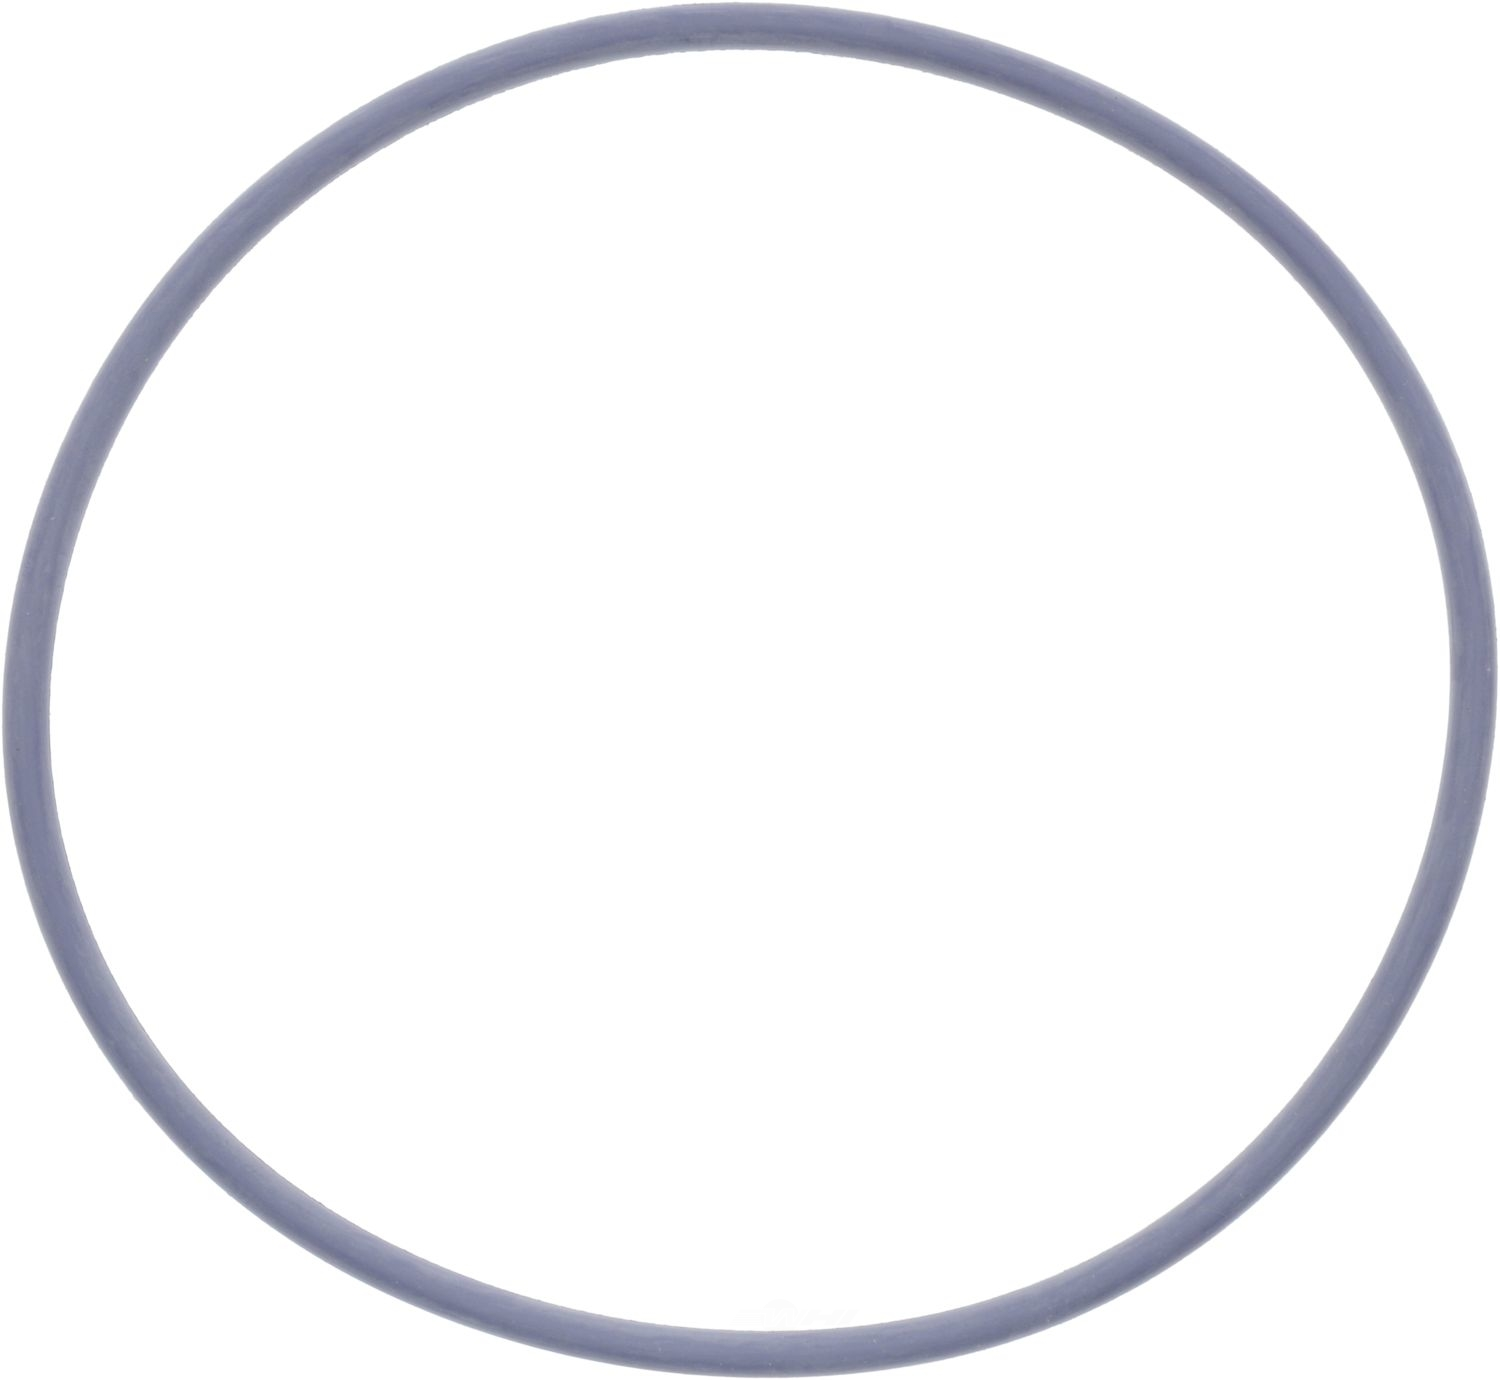 VICTOR REINZ - Engine Water Pump Gasket - VRZ 71-14683-00